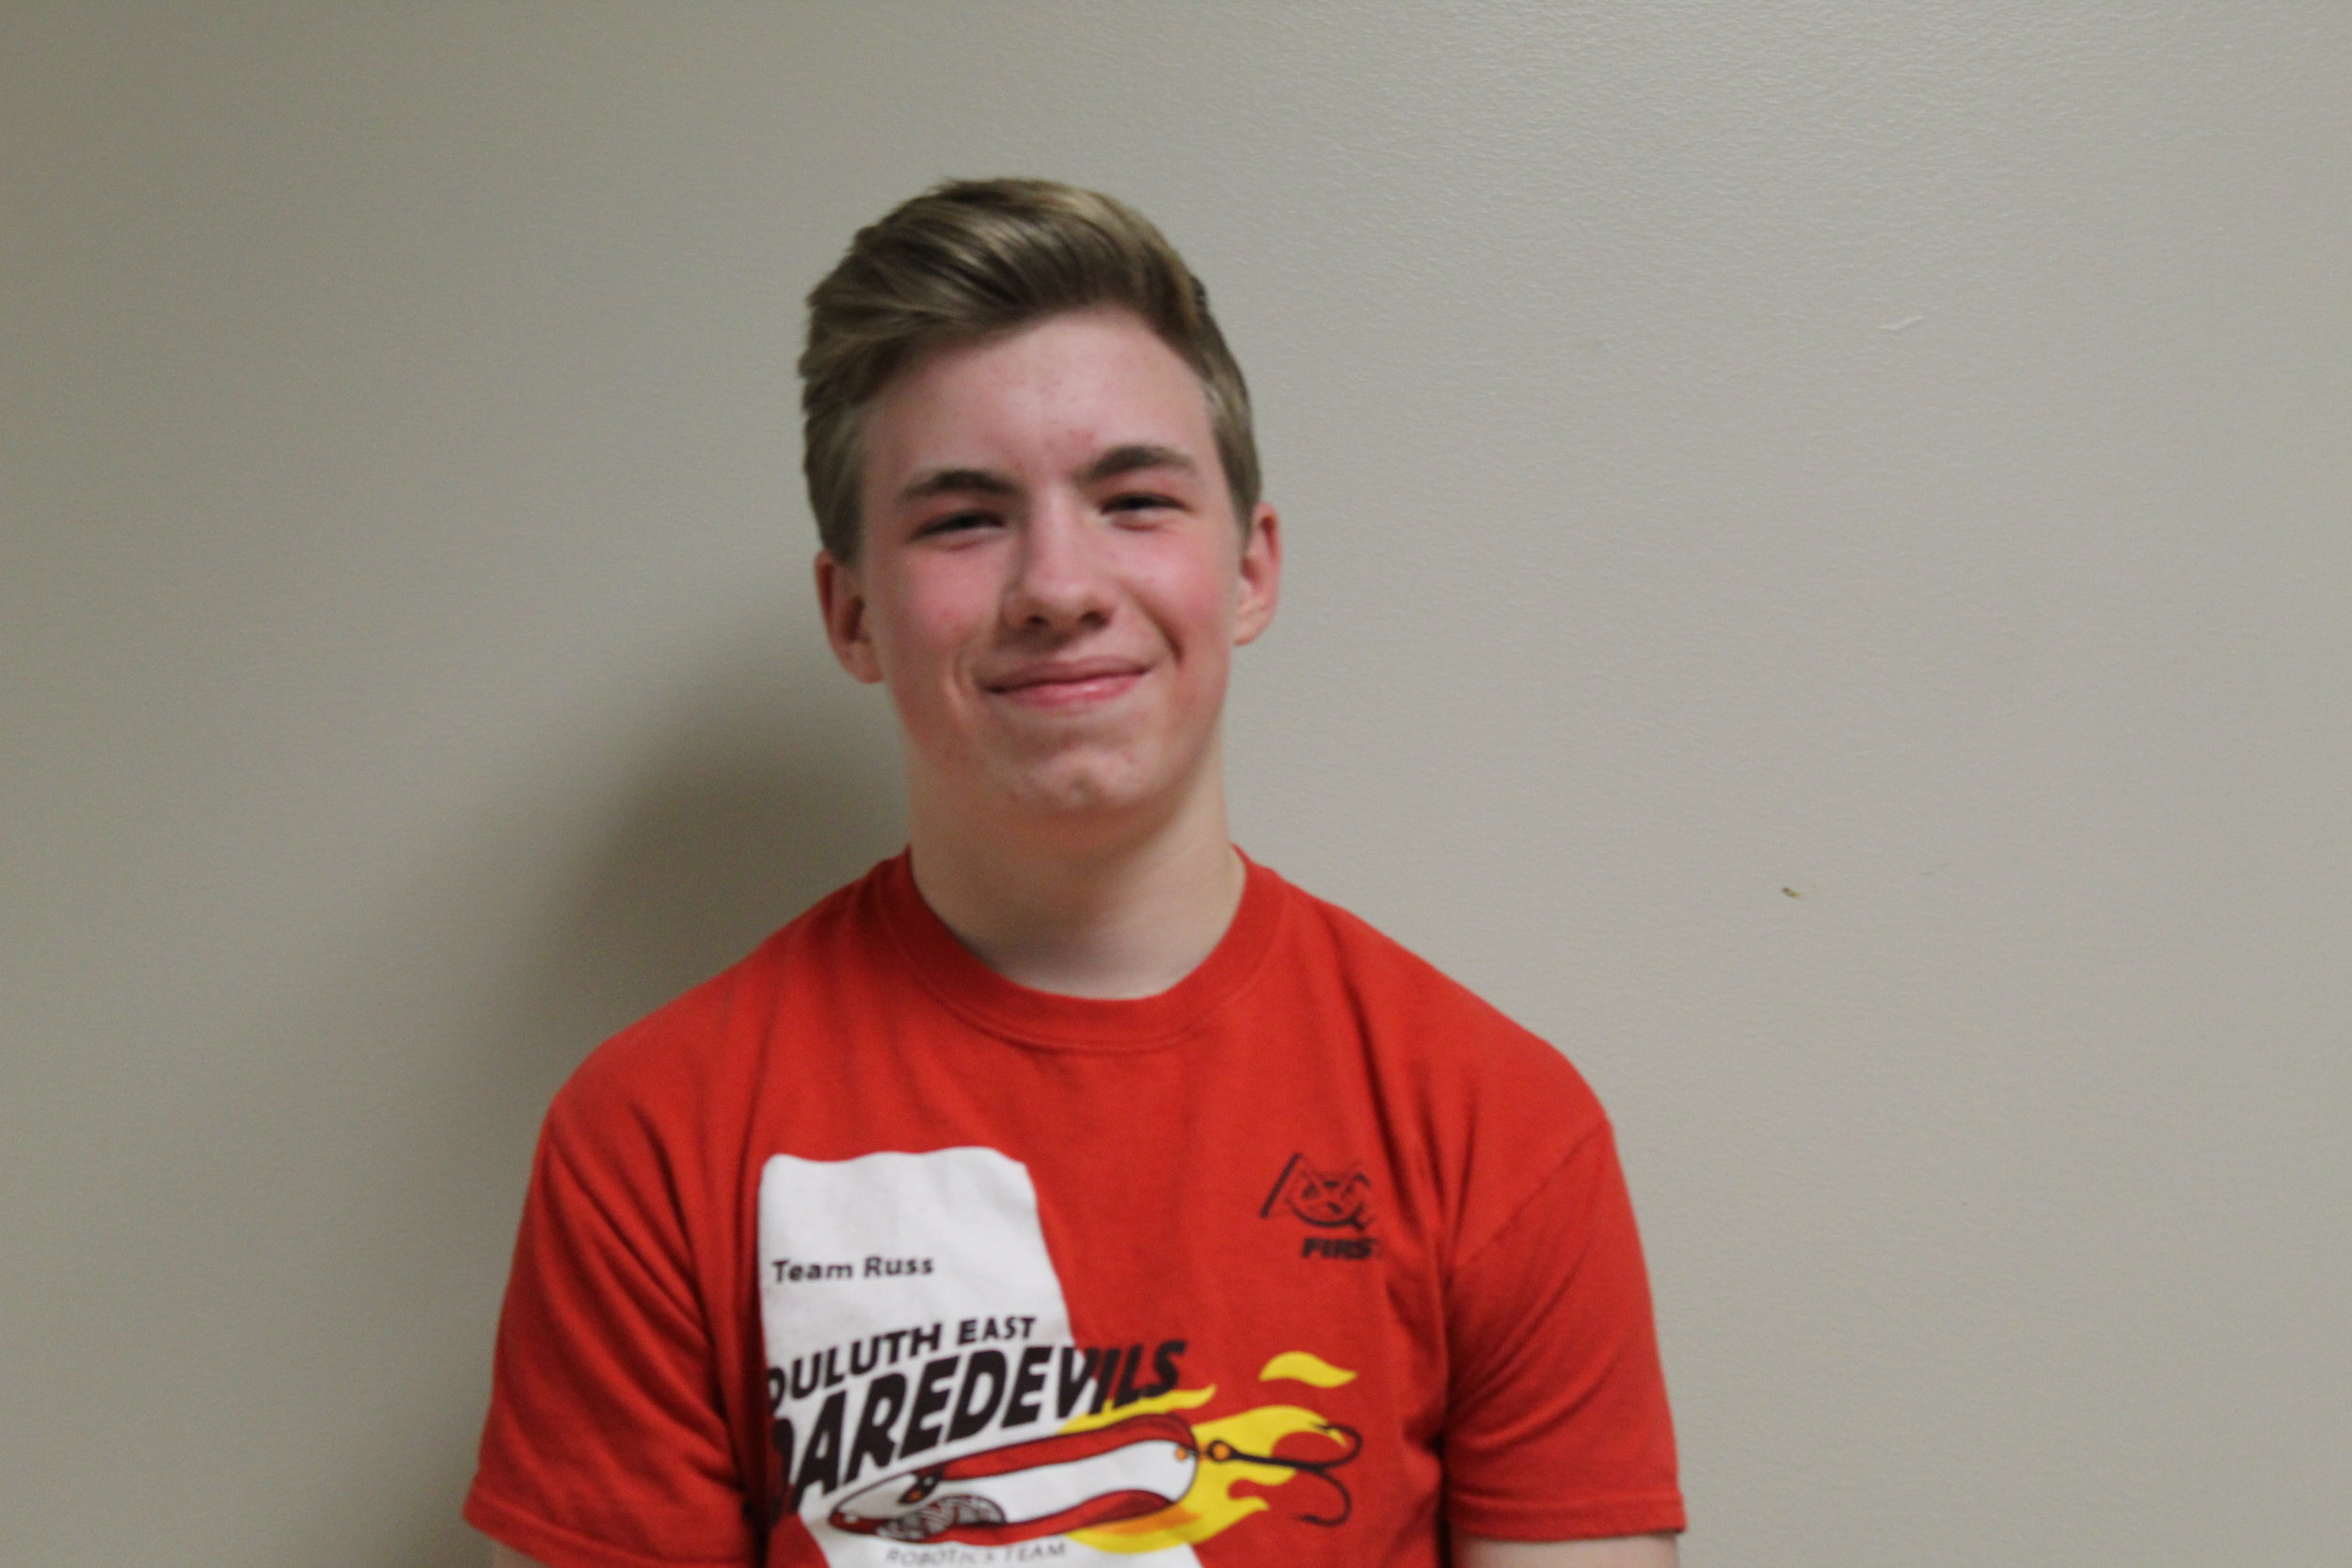 sean h. - Sean is a sophomore at Duluth East, and this is his 1st year on the team. He joined the team because of his interest in STEM. In his free time he likes to make bowling balls and play saxophone.